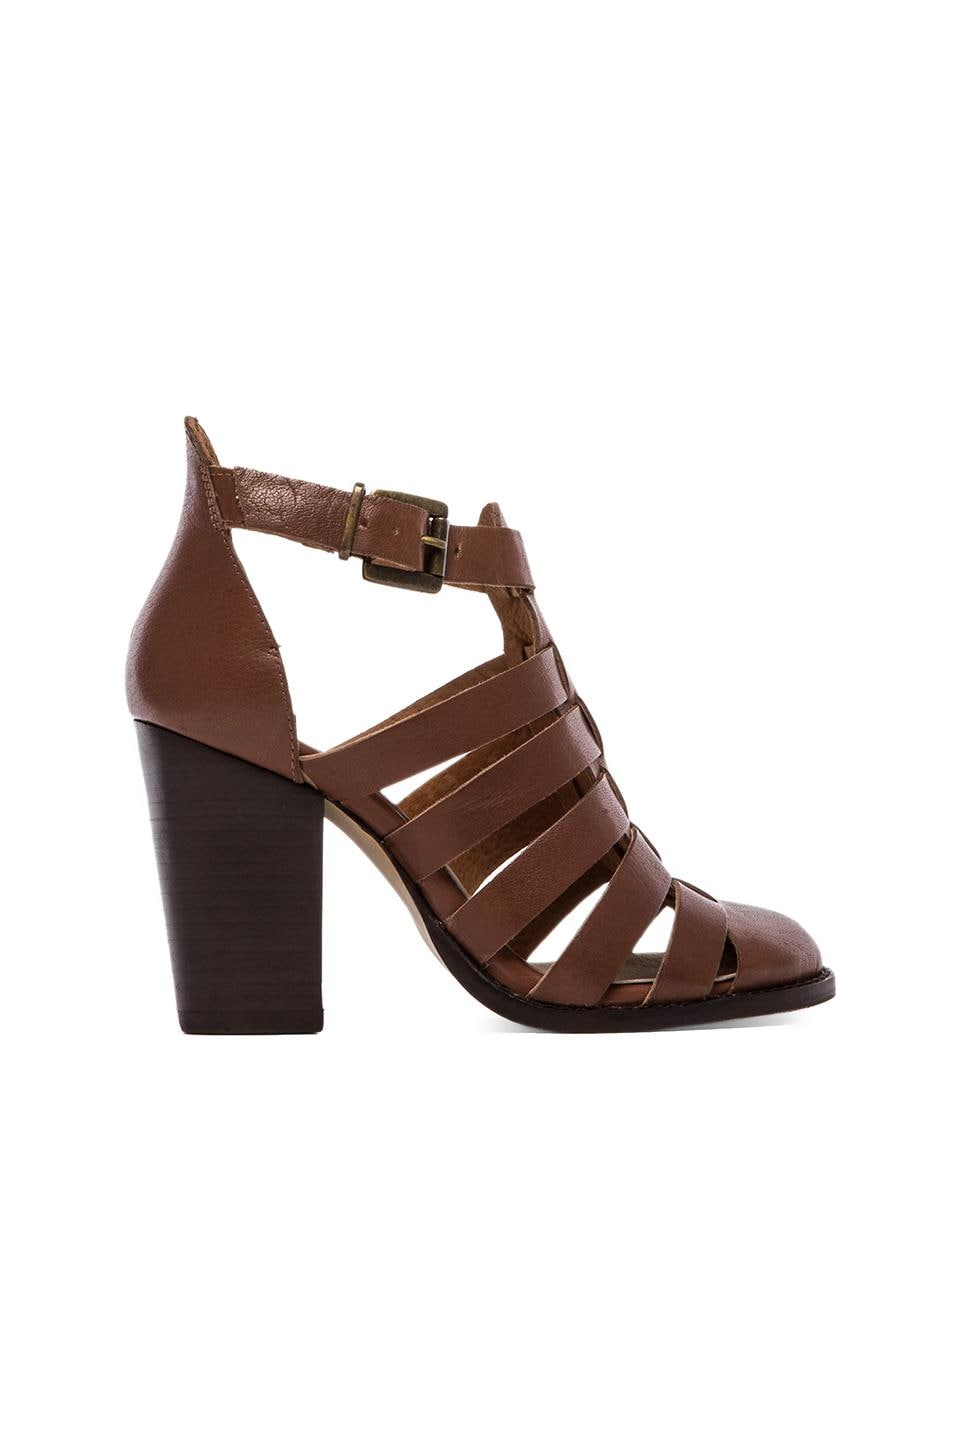 Seychelles In The Sky Sandal in Cognac